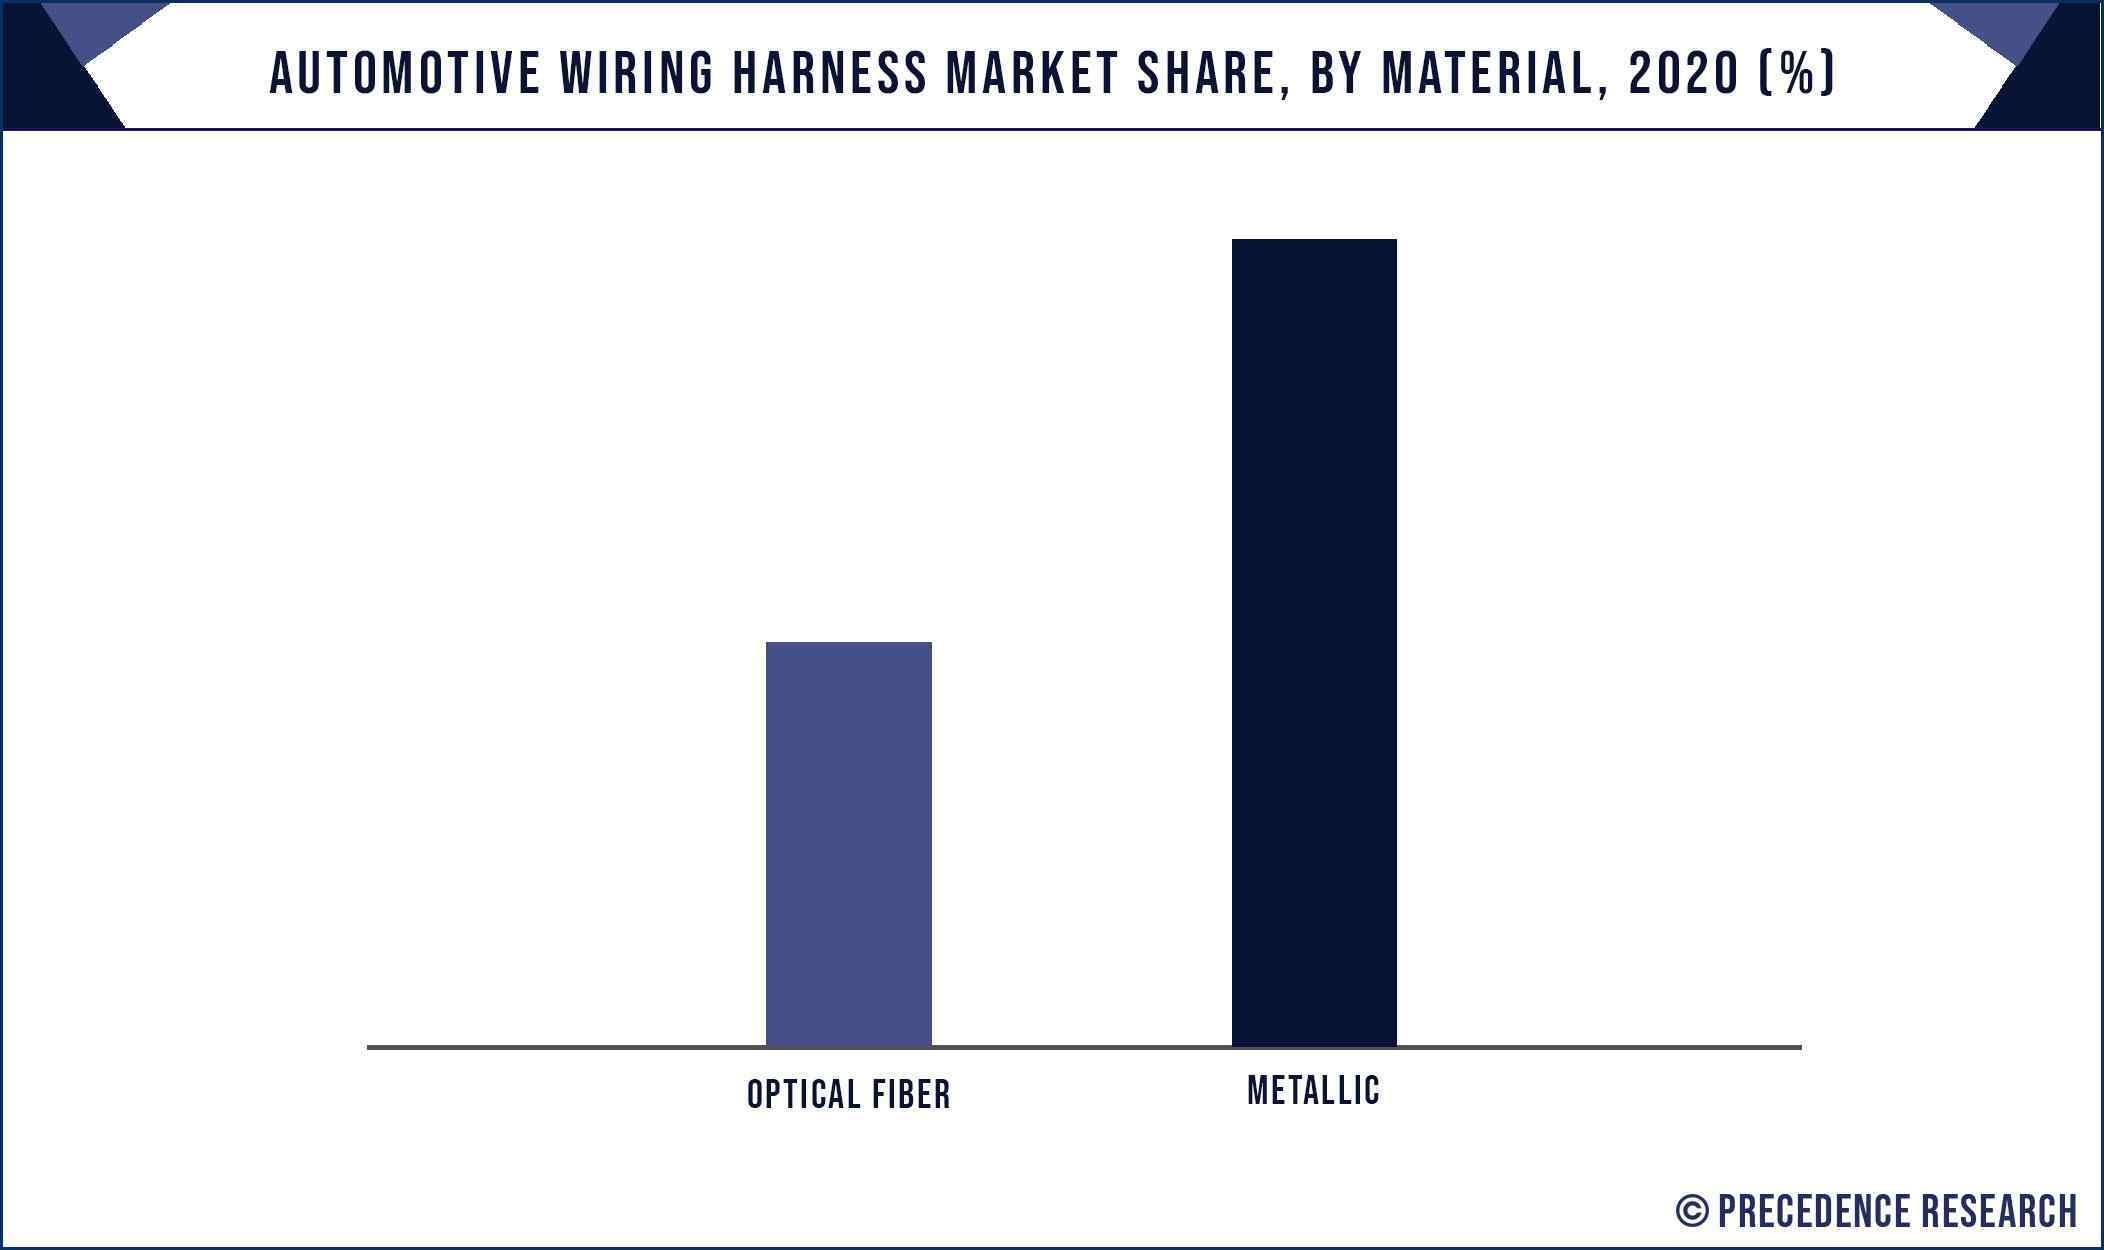 Automotive Wiring Harness Market Share, By Material, 2020 (%)